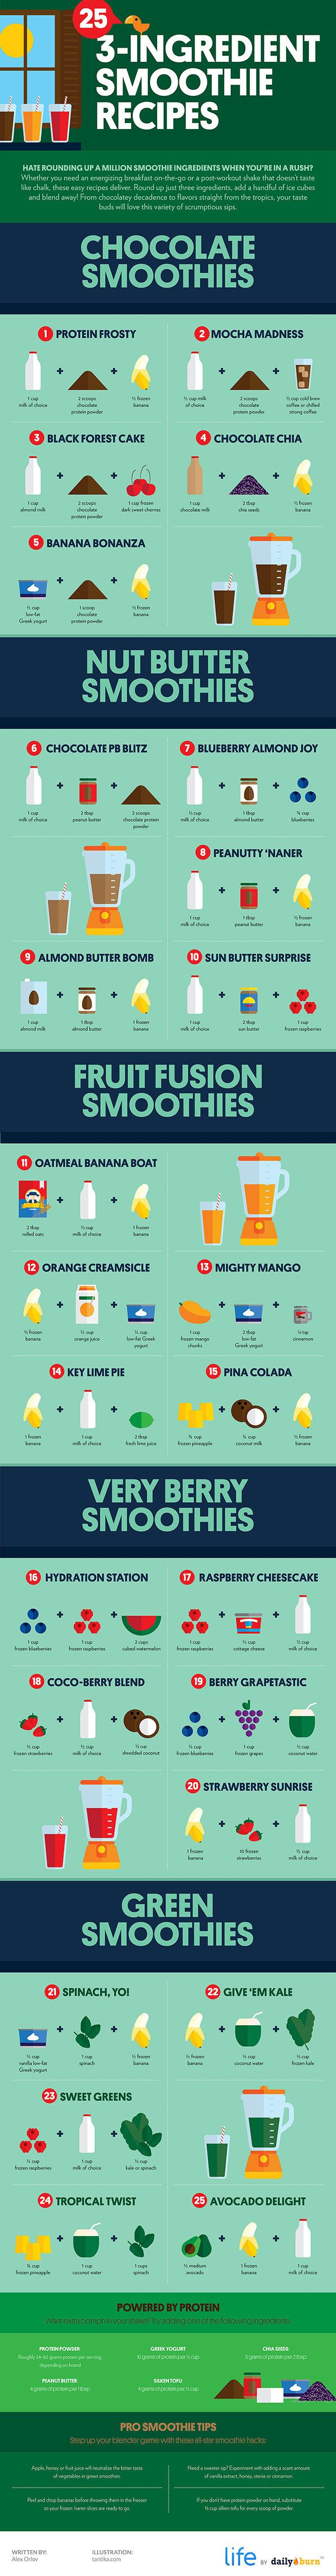 For smoothies that are even simpler. | 24 Diagrams To Help You Eat Healthier